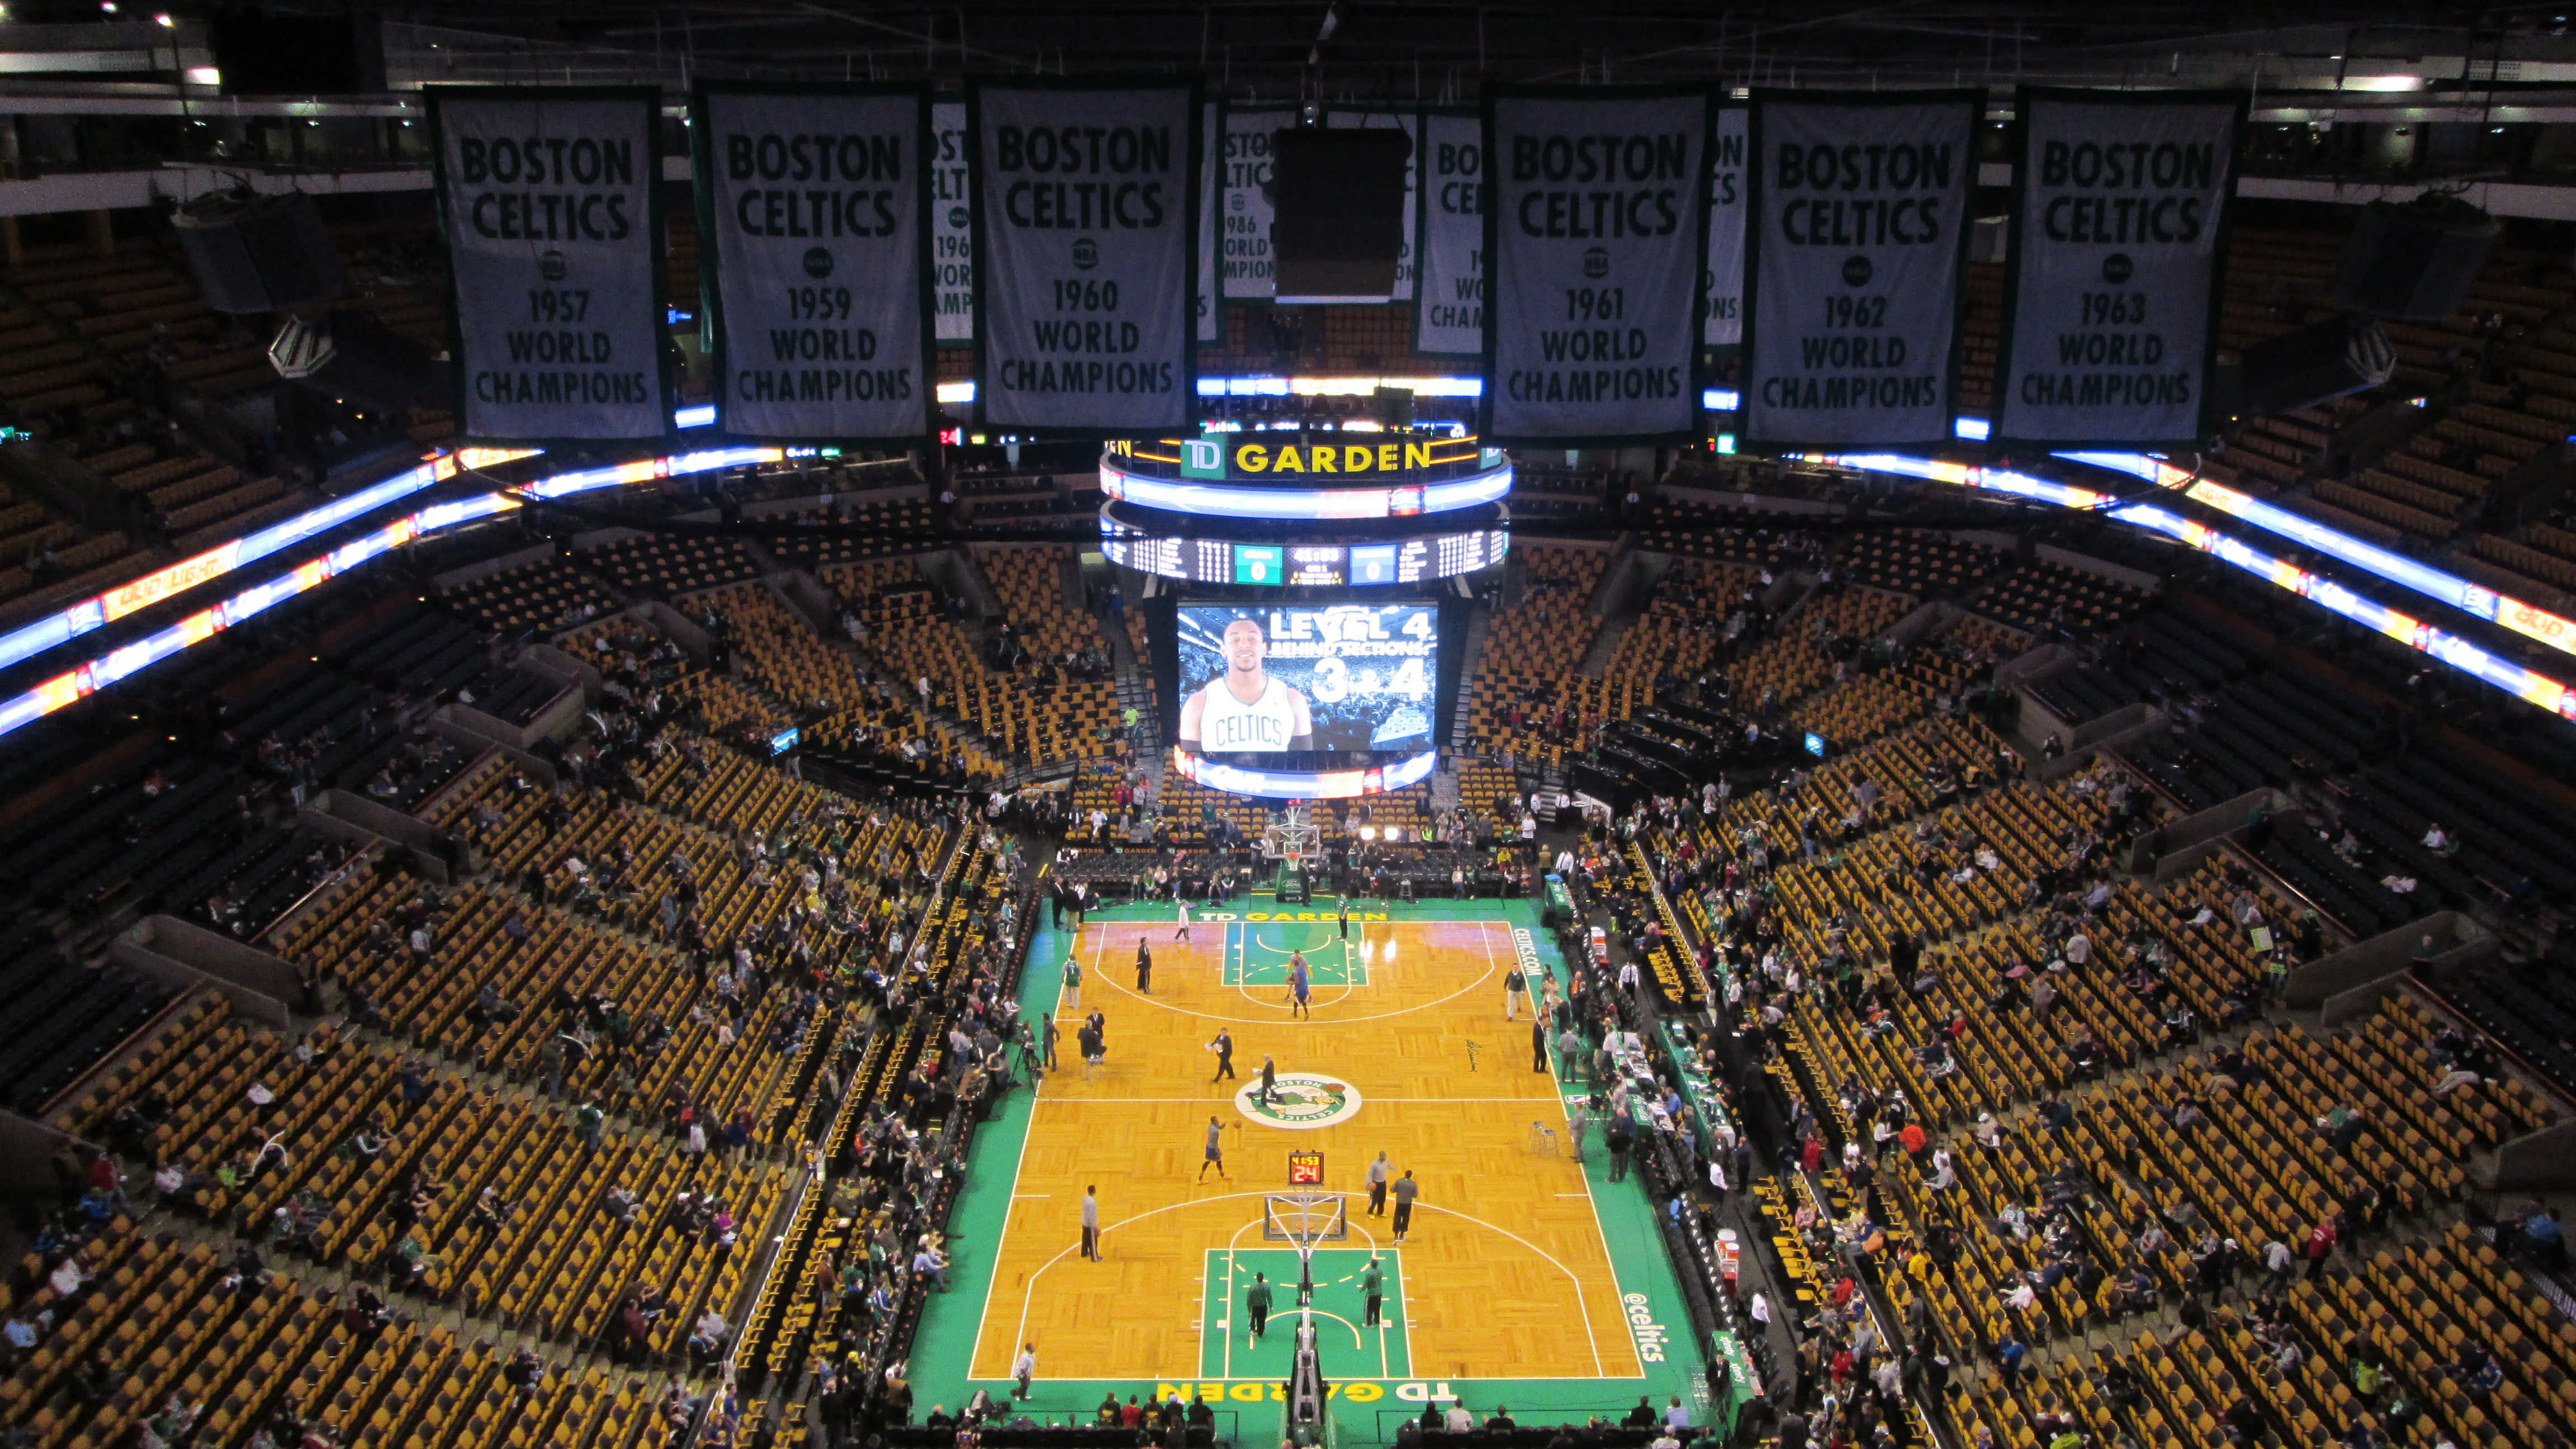 TD Garden, Interior View (from Behind The Net)